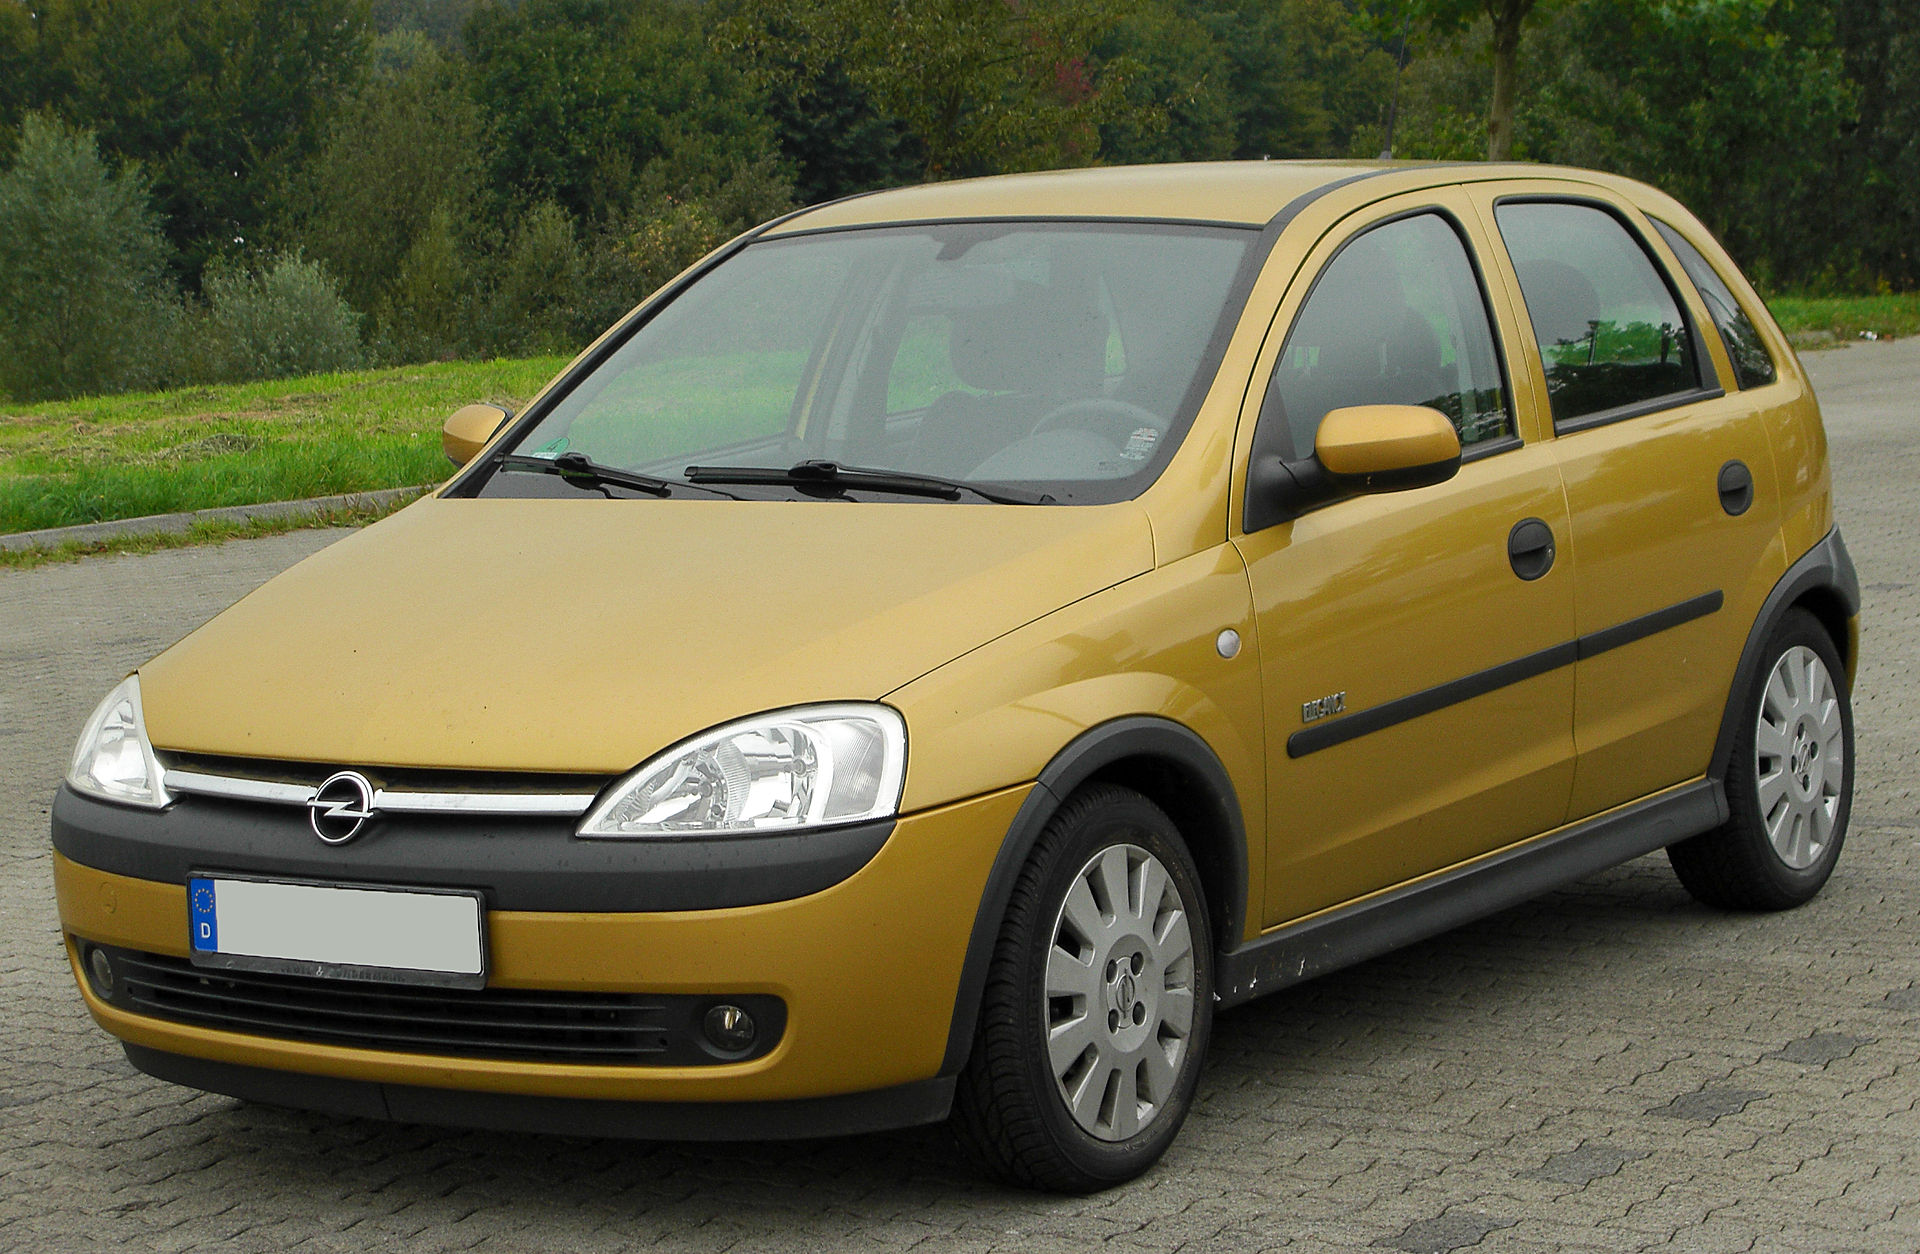 opel corsa c wikipedia. Black Bedroom Furniture Sets. Home Design Ideas